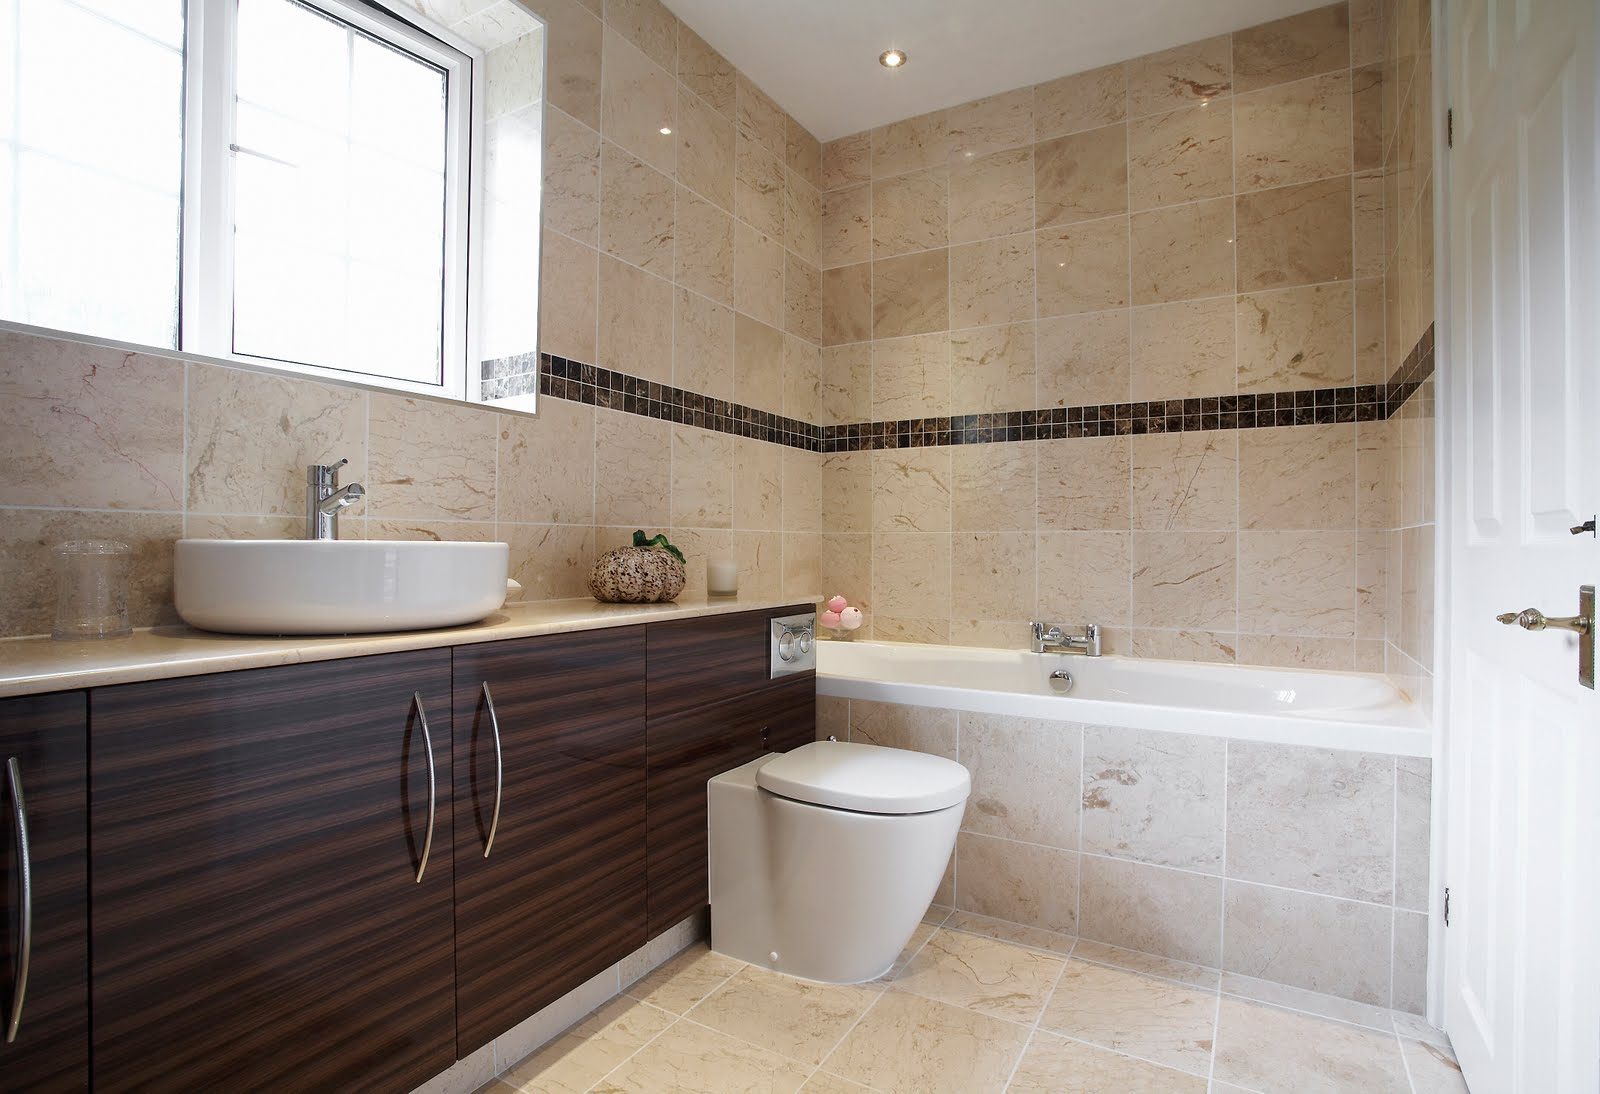 Designs For Small Bathrooms With A Shower Cymru Kitchens Ltd Cymru Kitchens Bathrooms